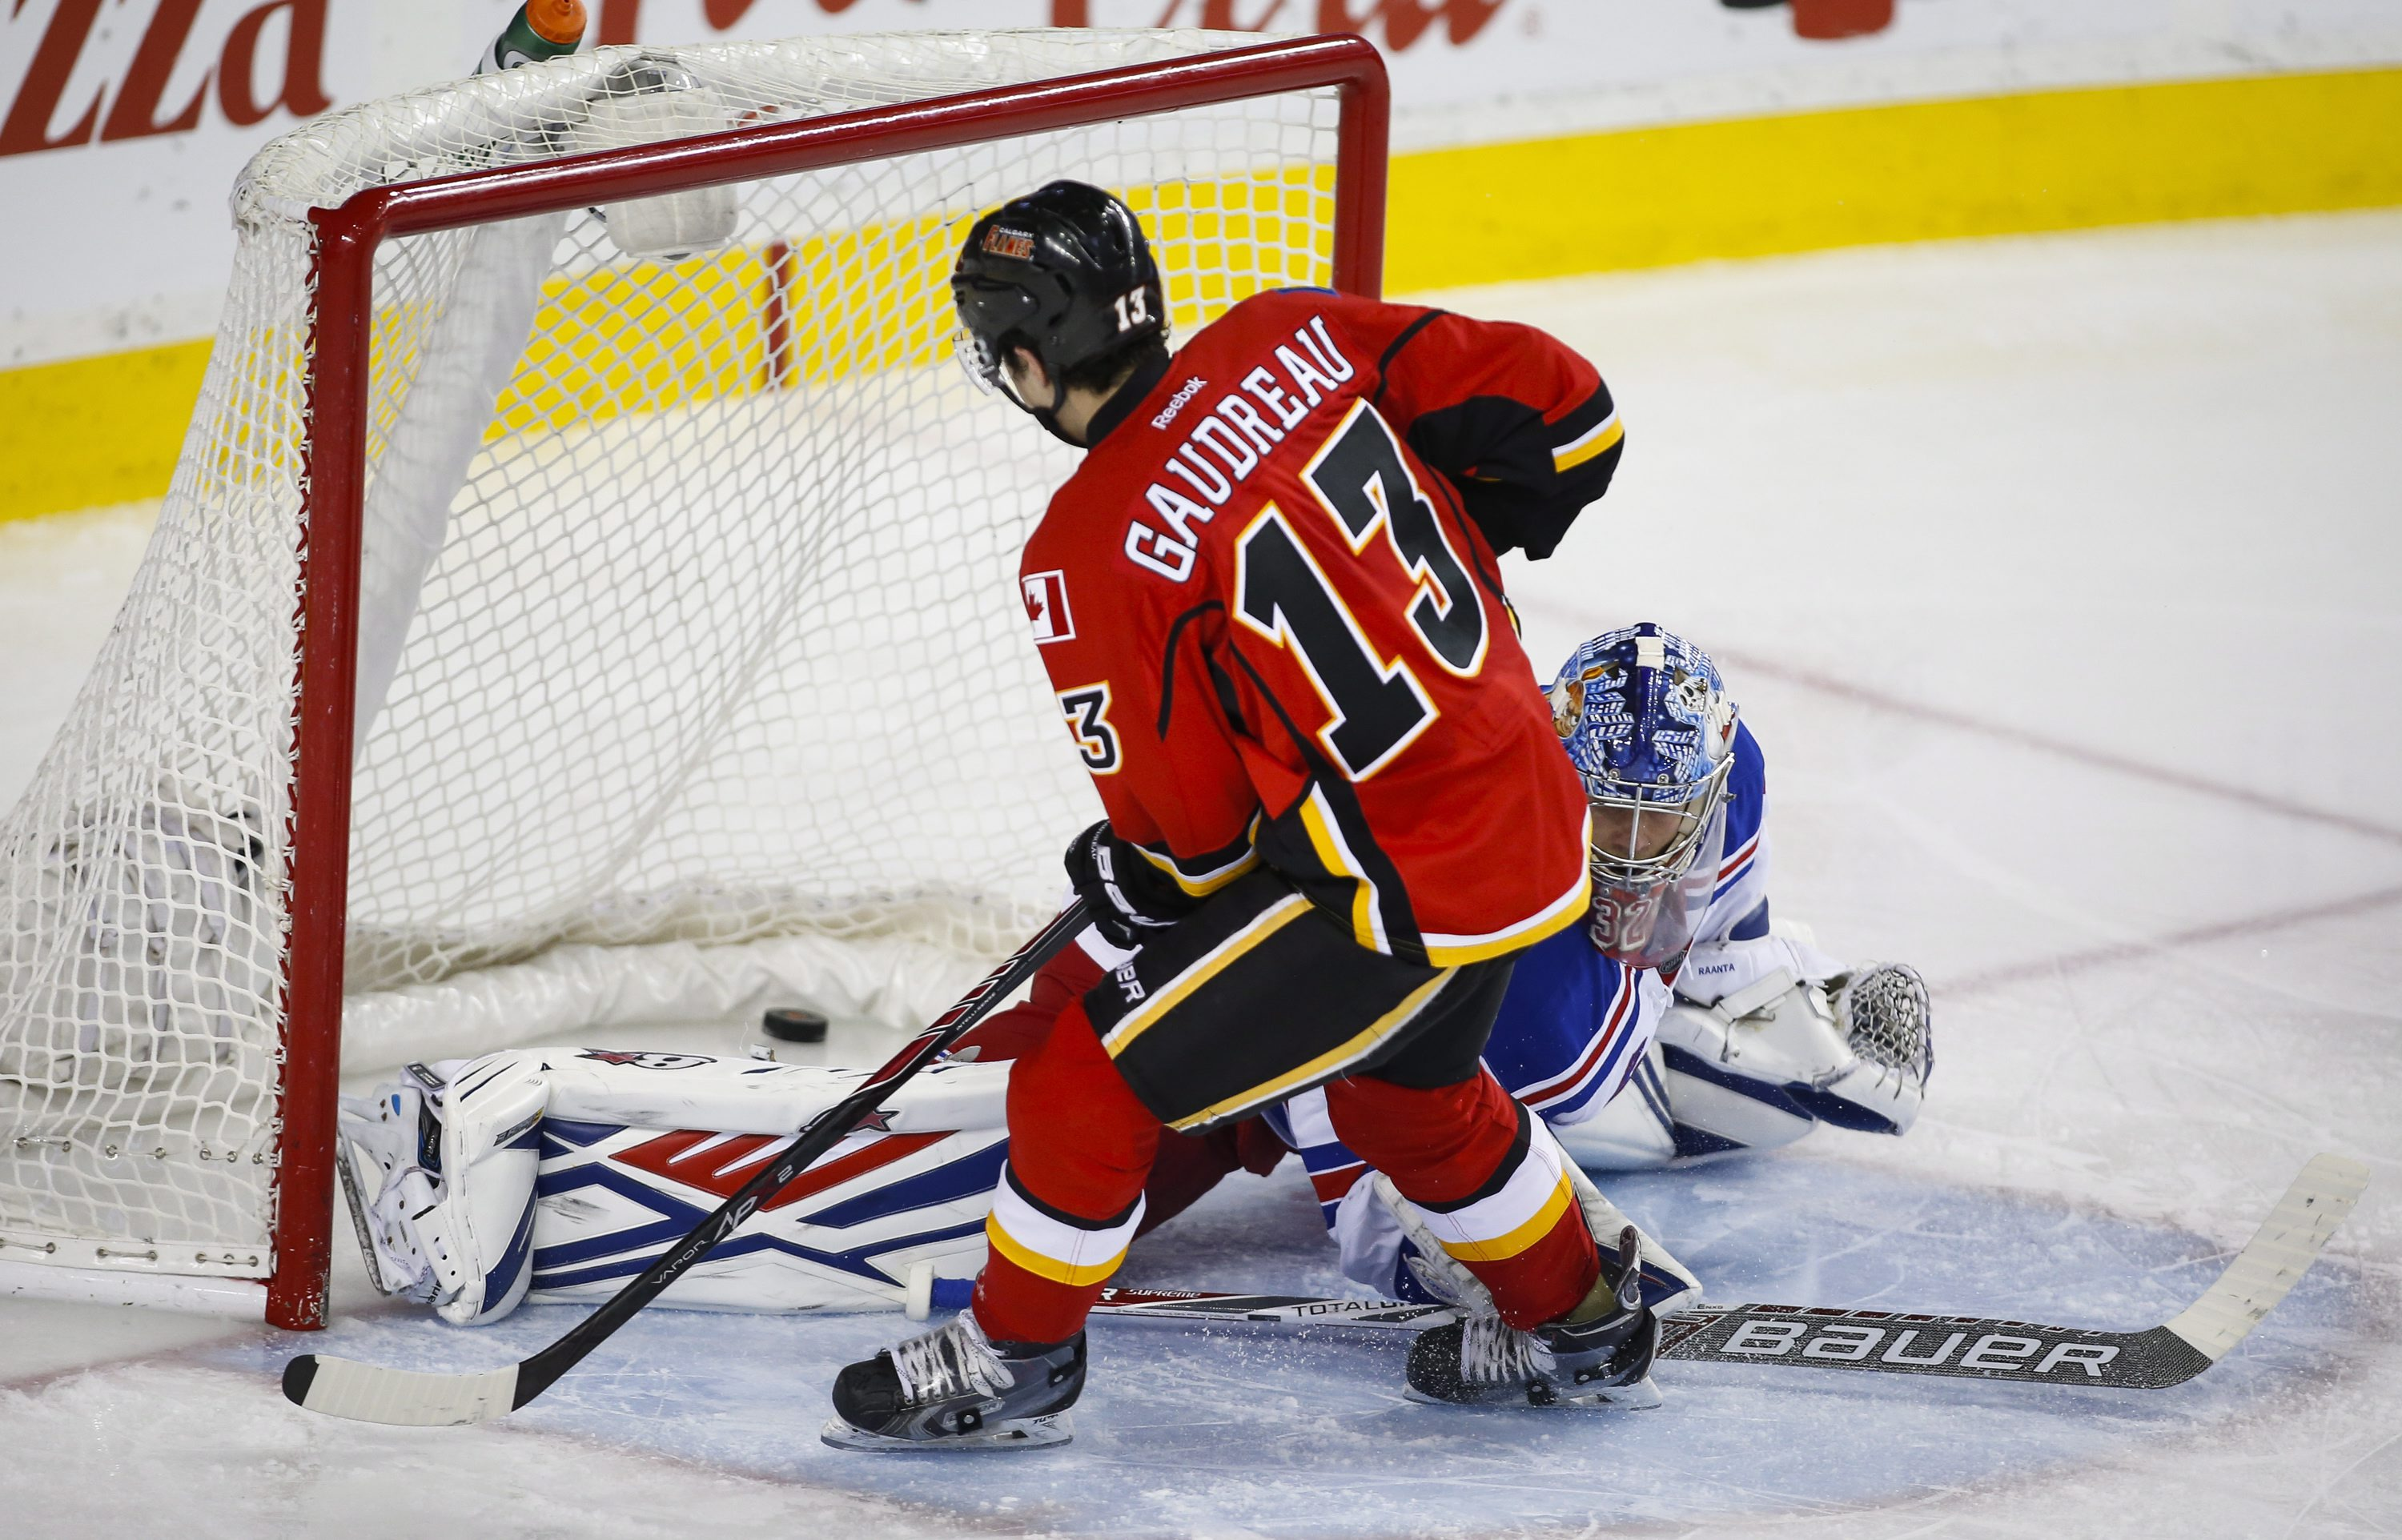 New York Rangers' goalie Antti Raanta, right, of Finland, lets in a goal from Calgary Flames' Johnny Gaudreau during third period NHL hockey action, in Calgary, on Saturday, Dec. 12, 2015. (Jeff McIntosh/The Canadian Press via AP)